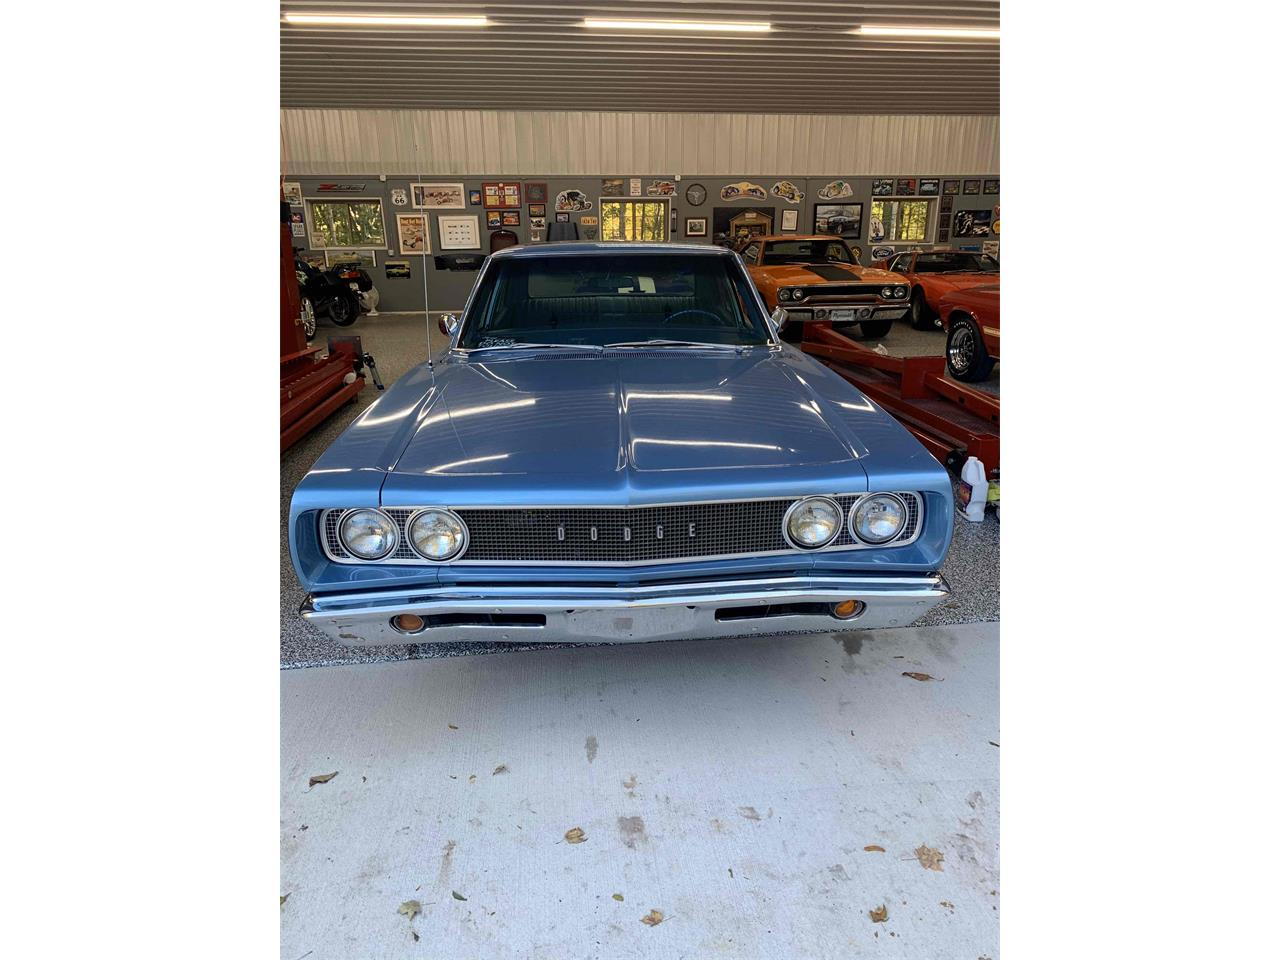 1968 Dodge Coronet 440 (CC-1296235) for sale in Cross Plains, Tennessee